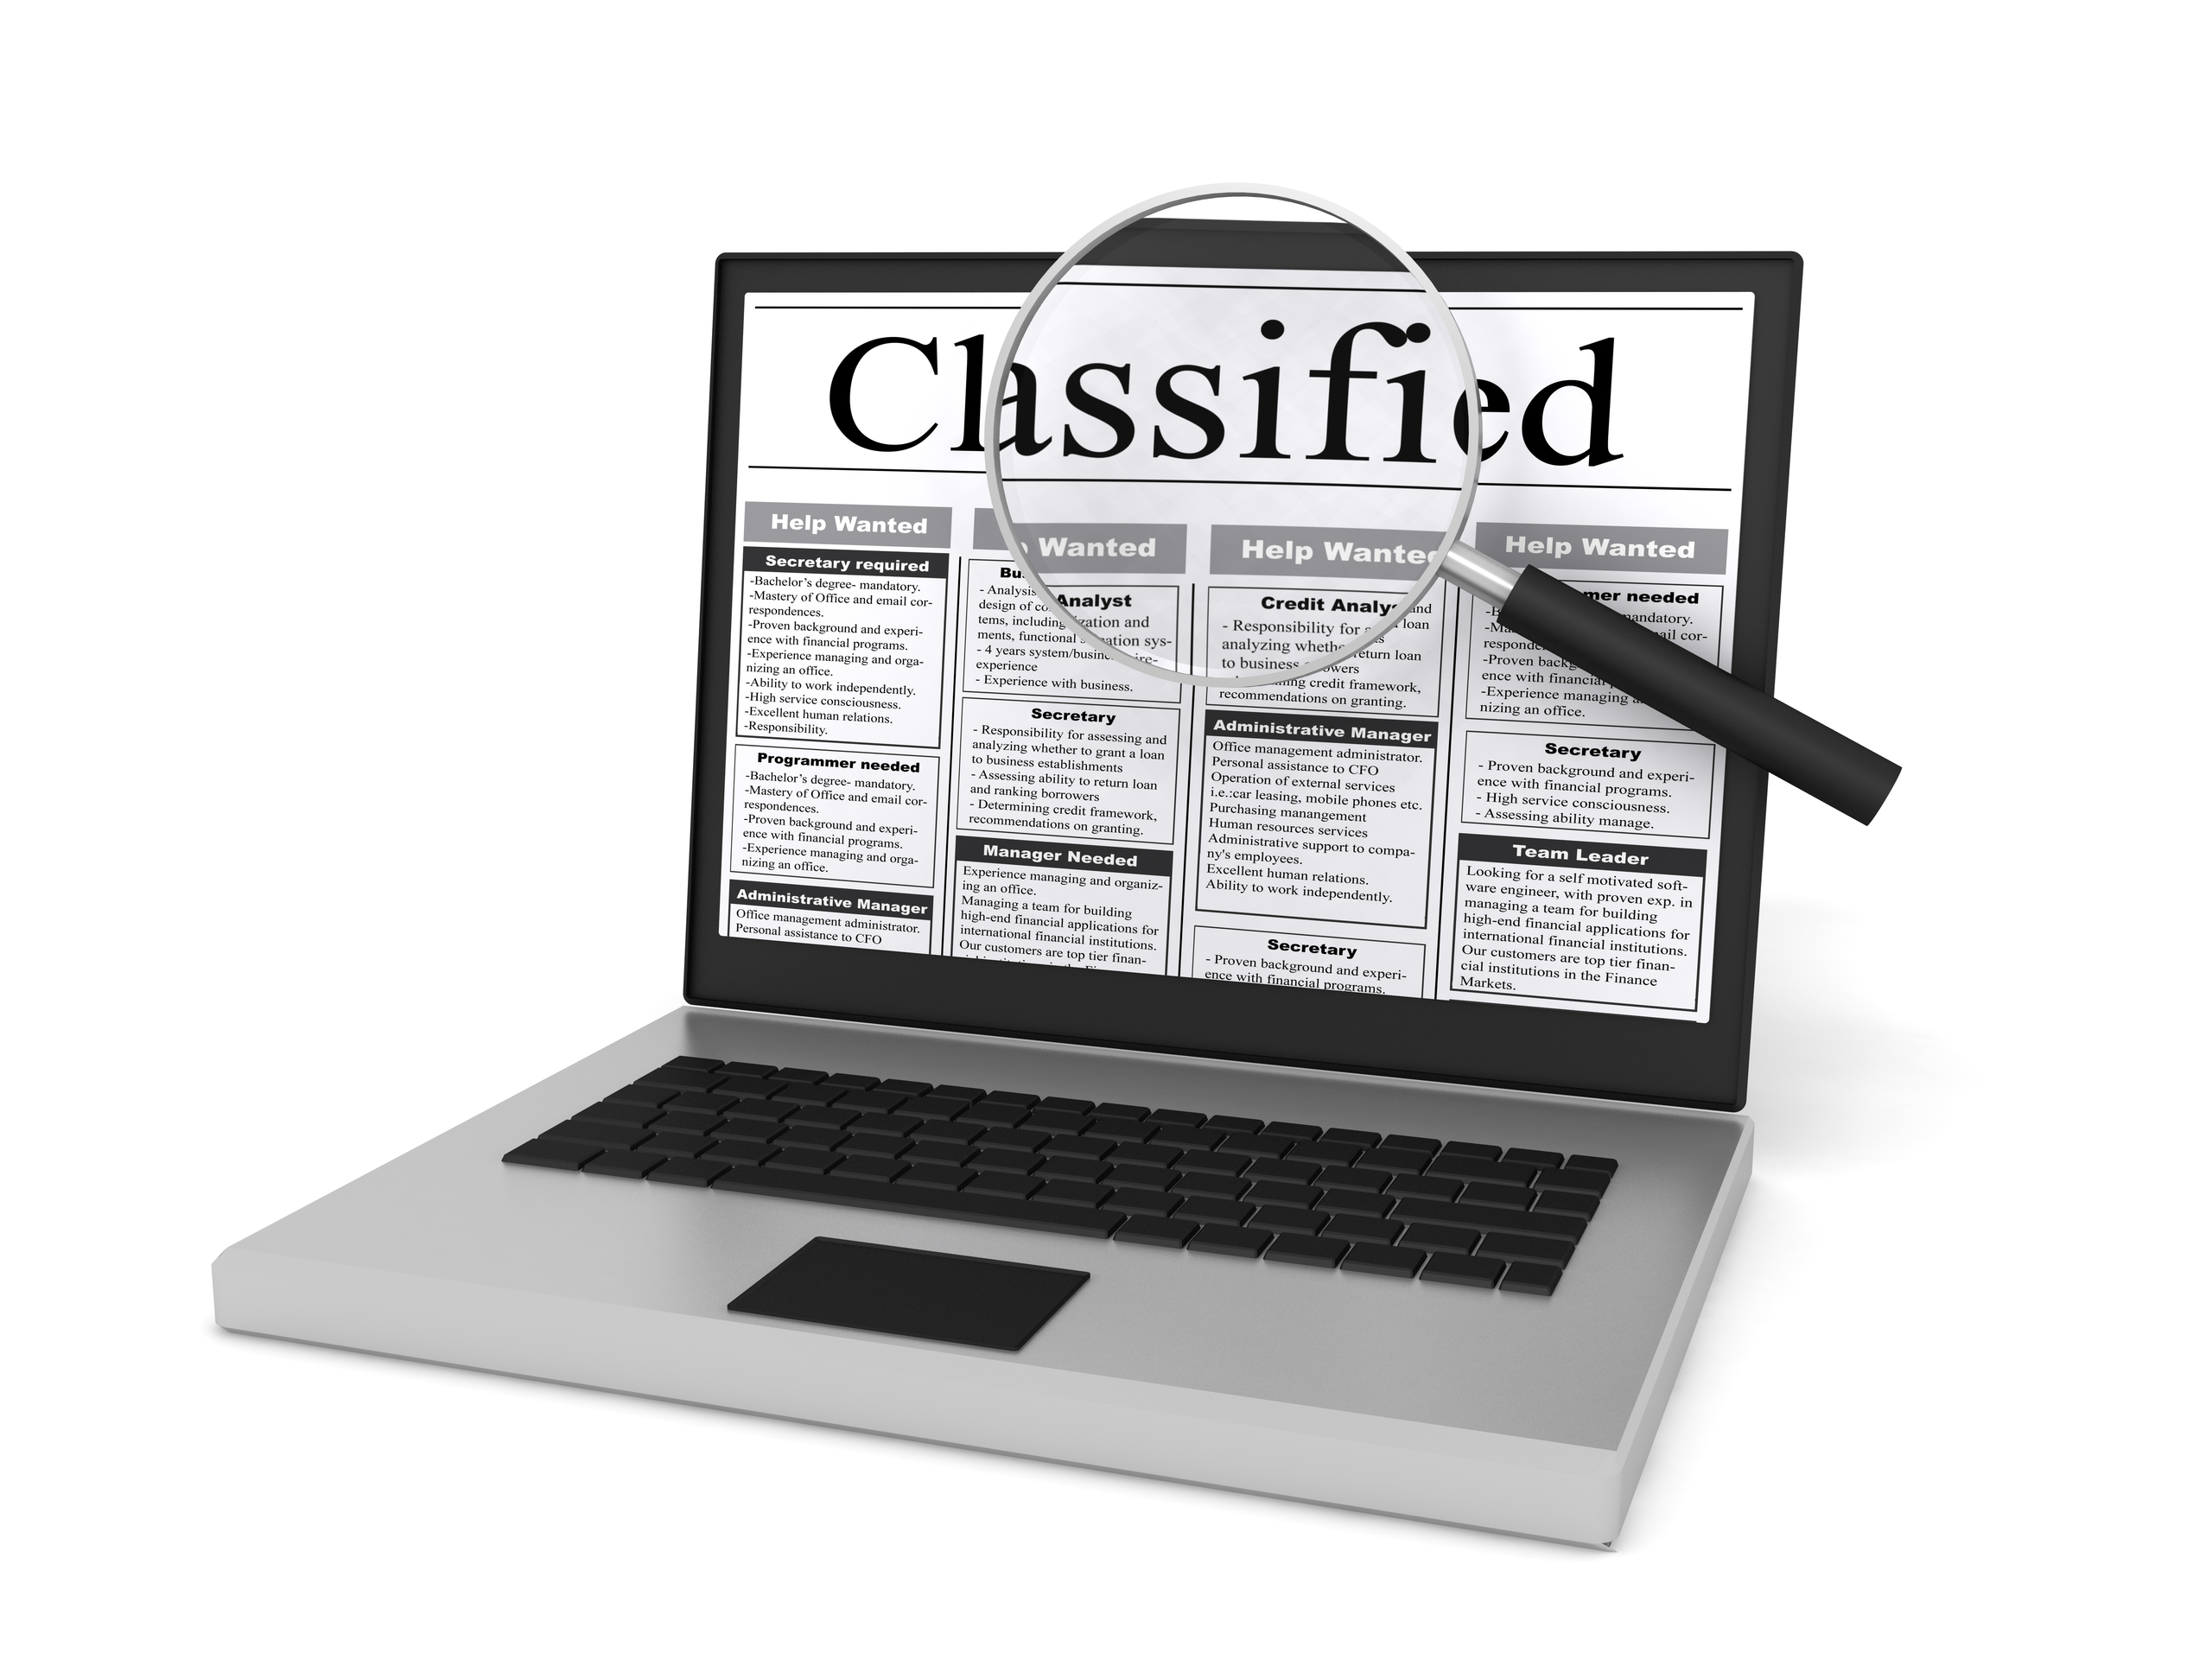 Classified ads online dating